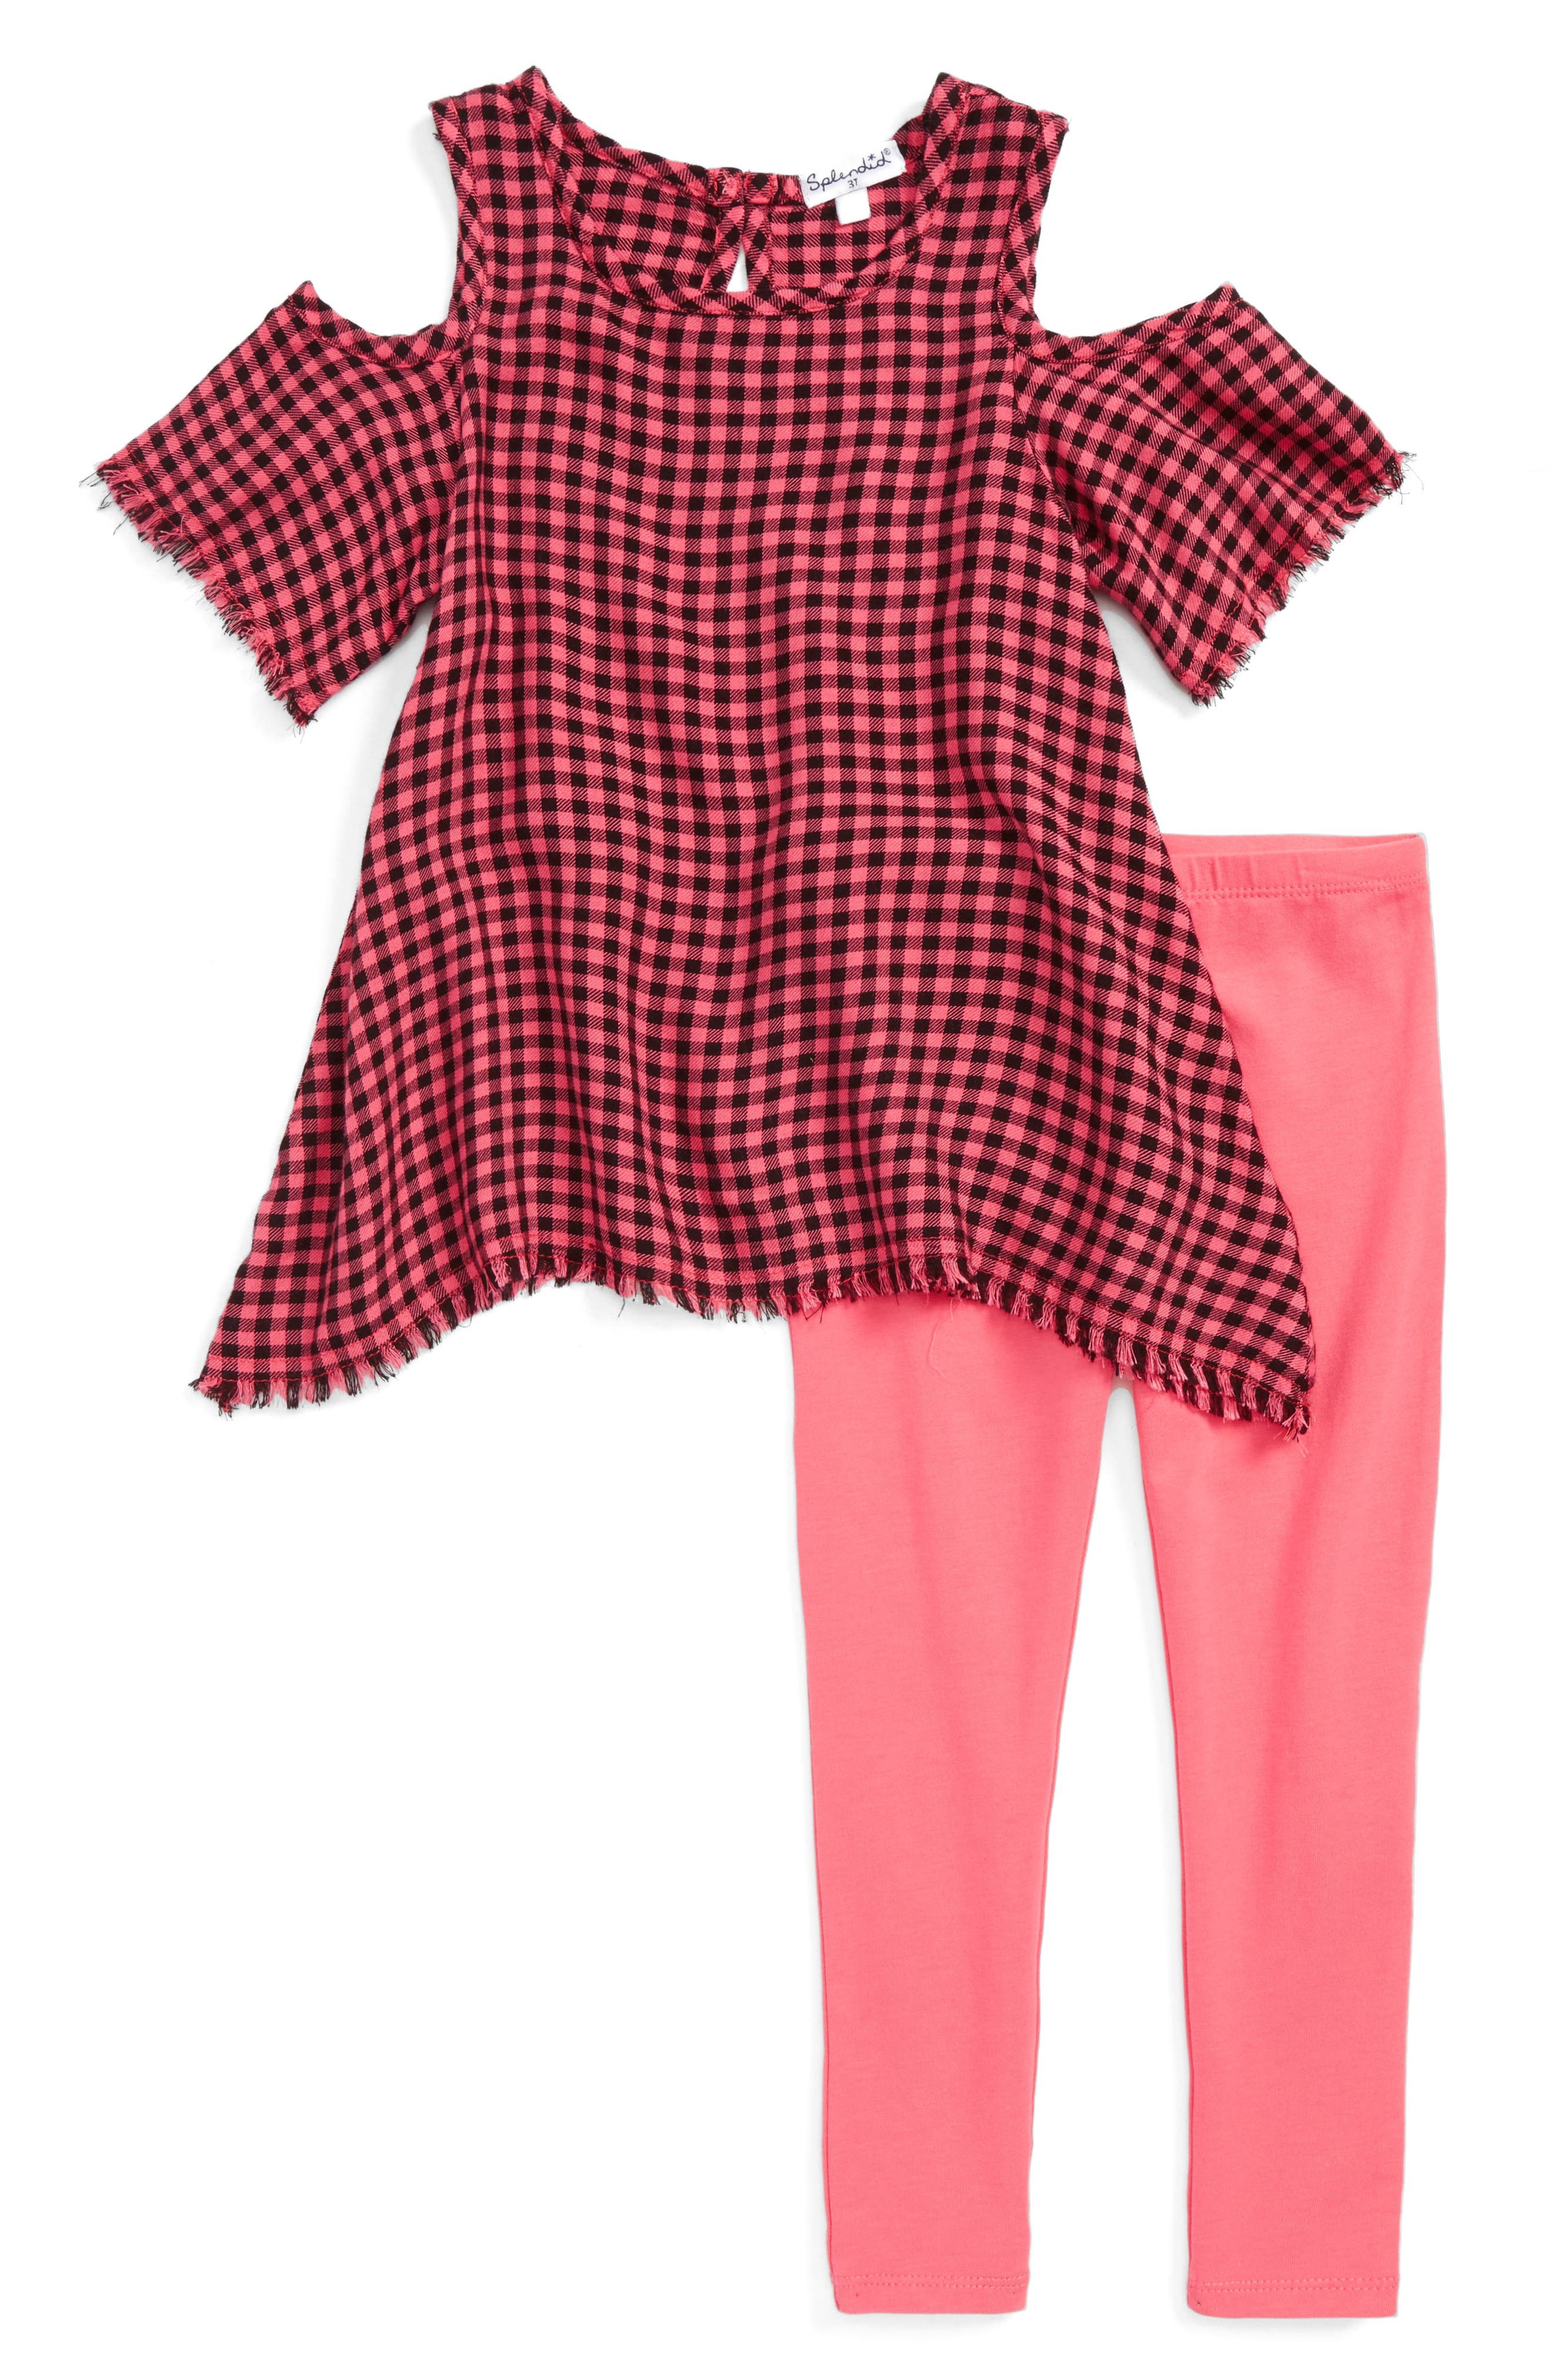 Alternate Image 1 Selected - Splendid Plaid Top & Leggings Set (Baby Girls)